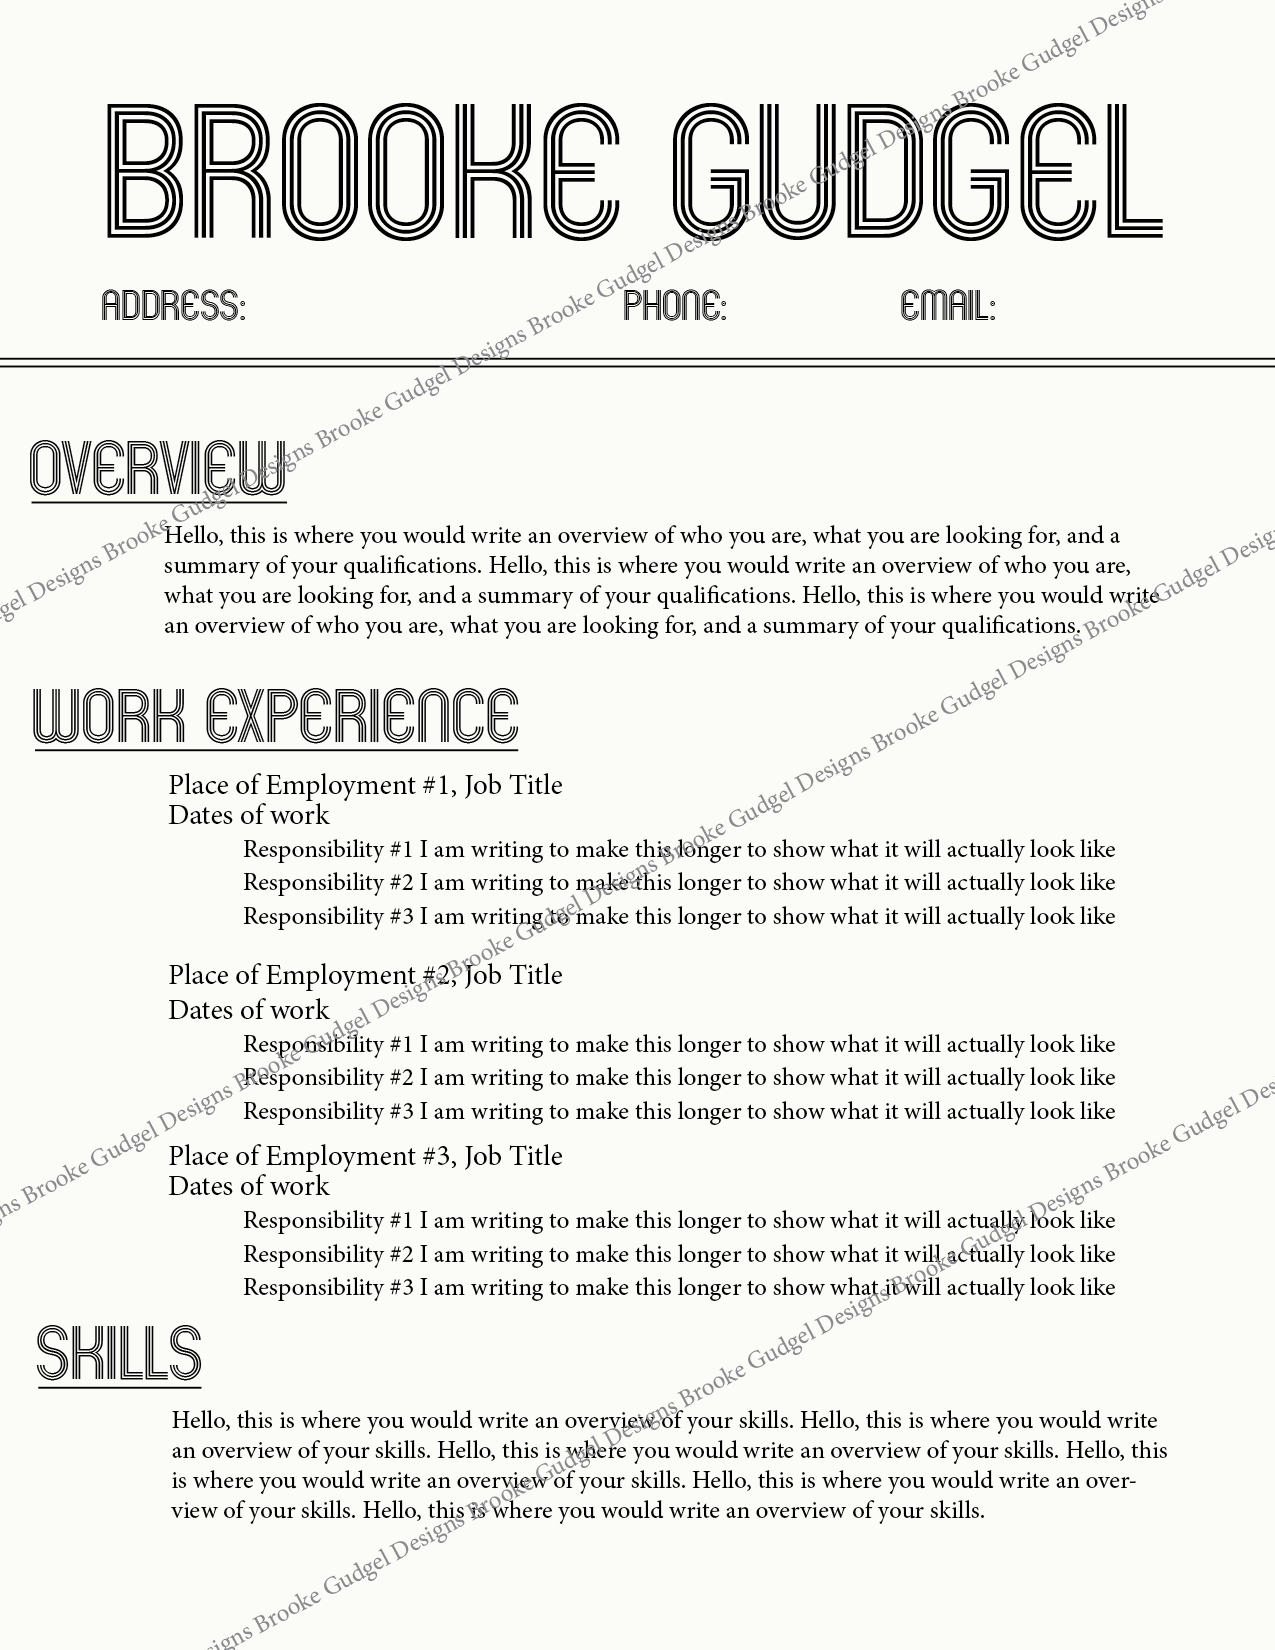 pin by brooke gudgel on creative spice pinterest sorority resume and sorority - Sorority Resume Template